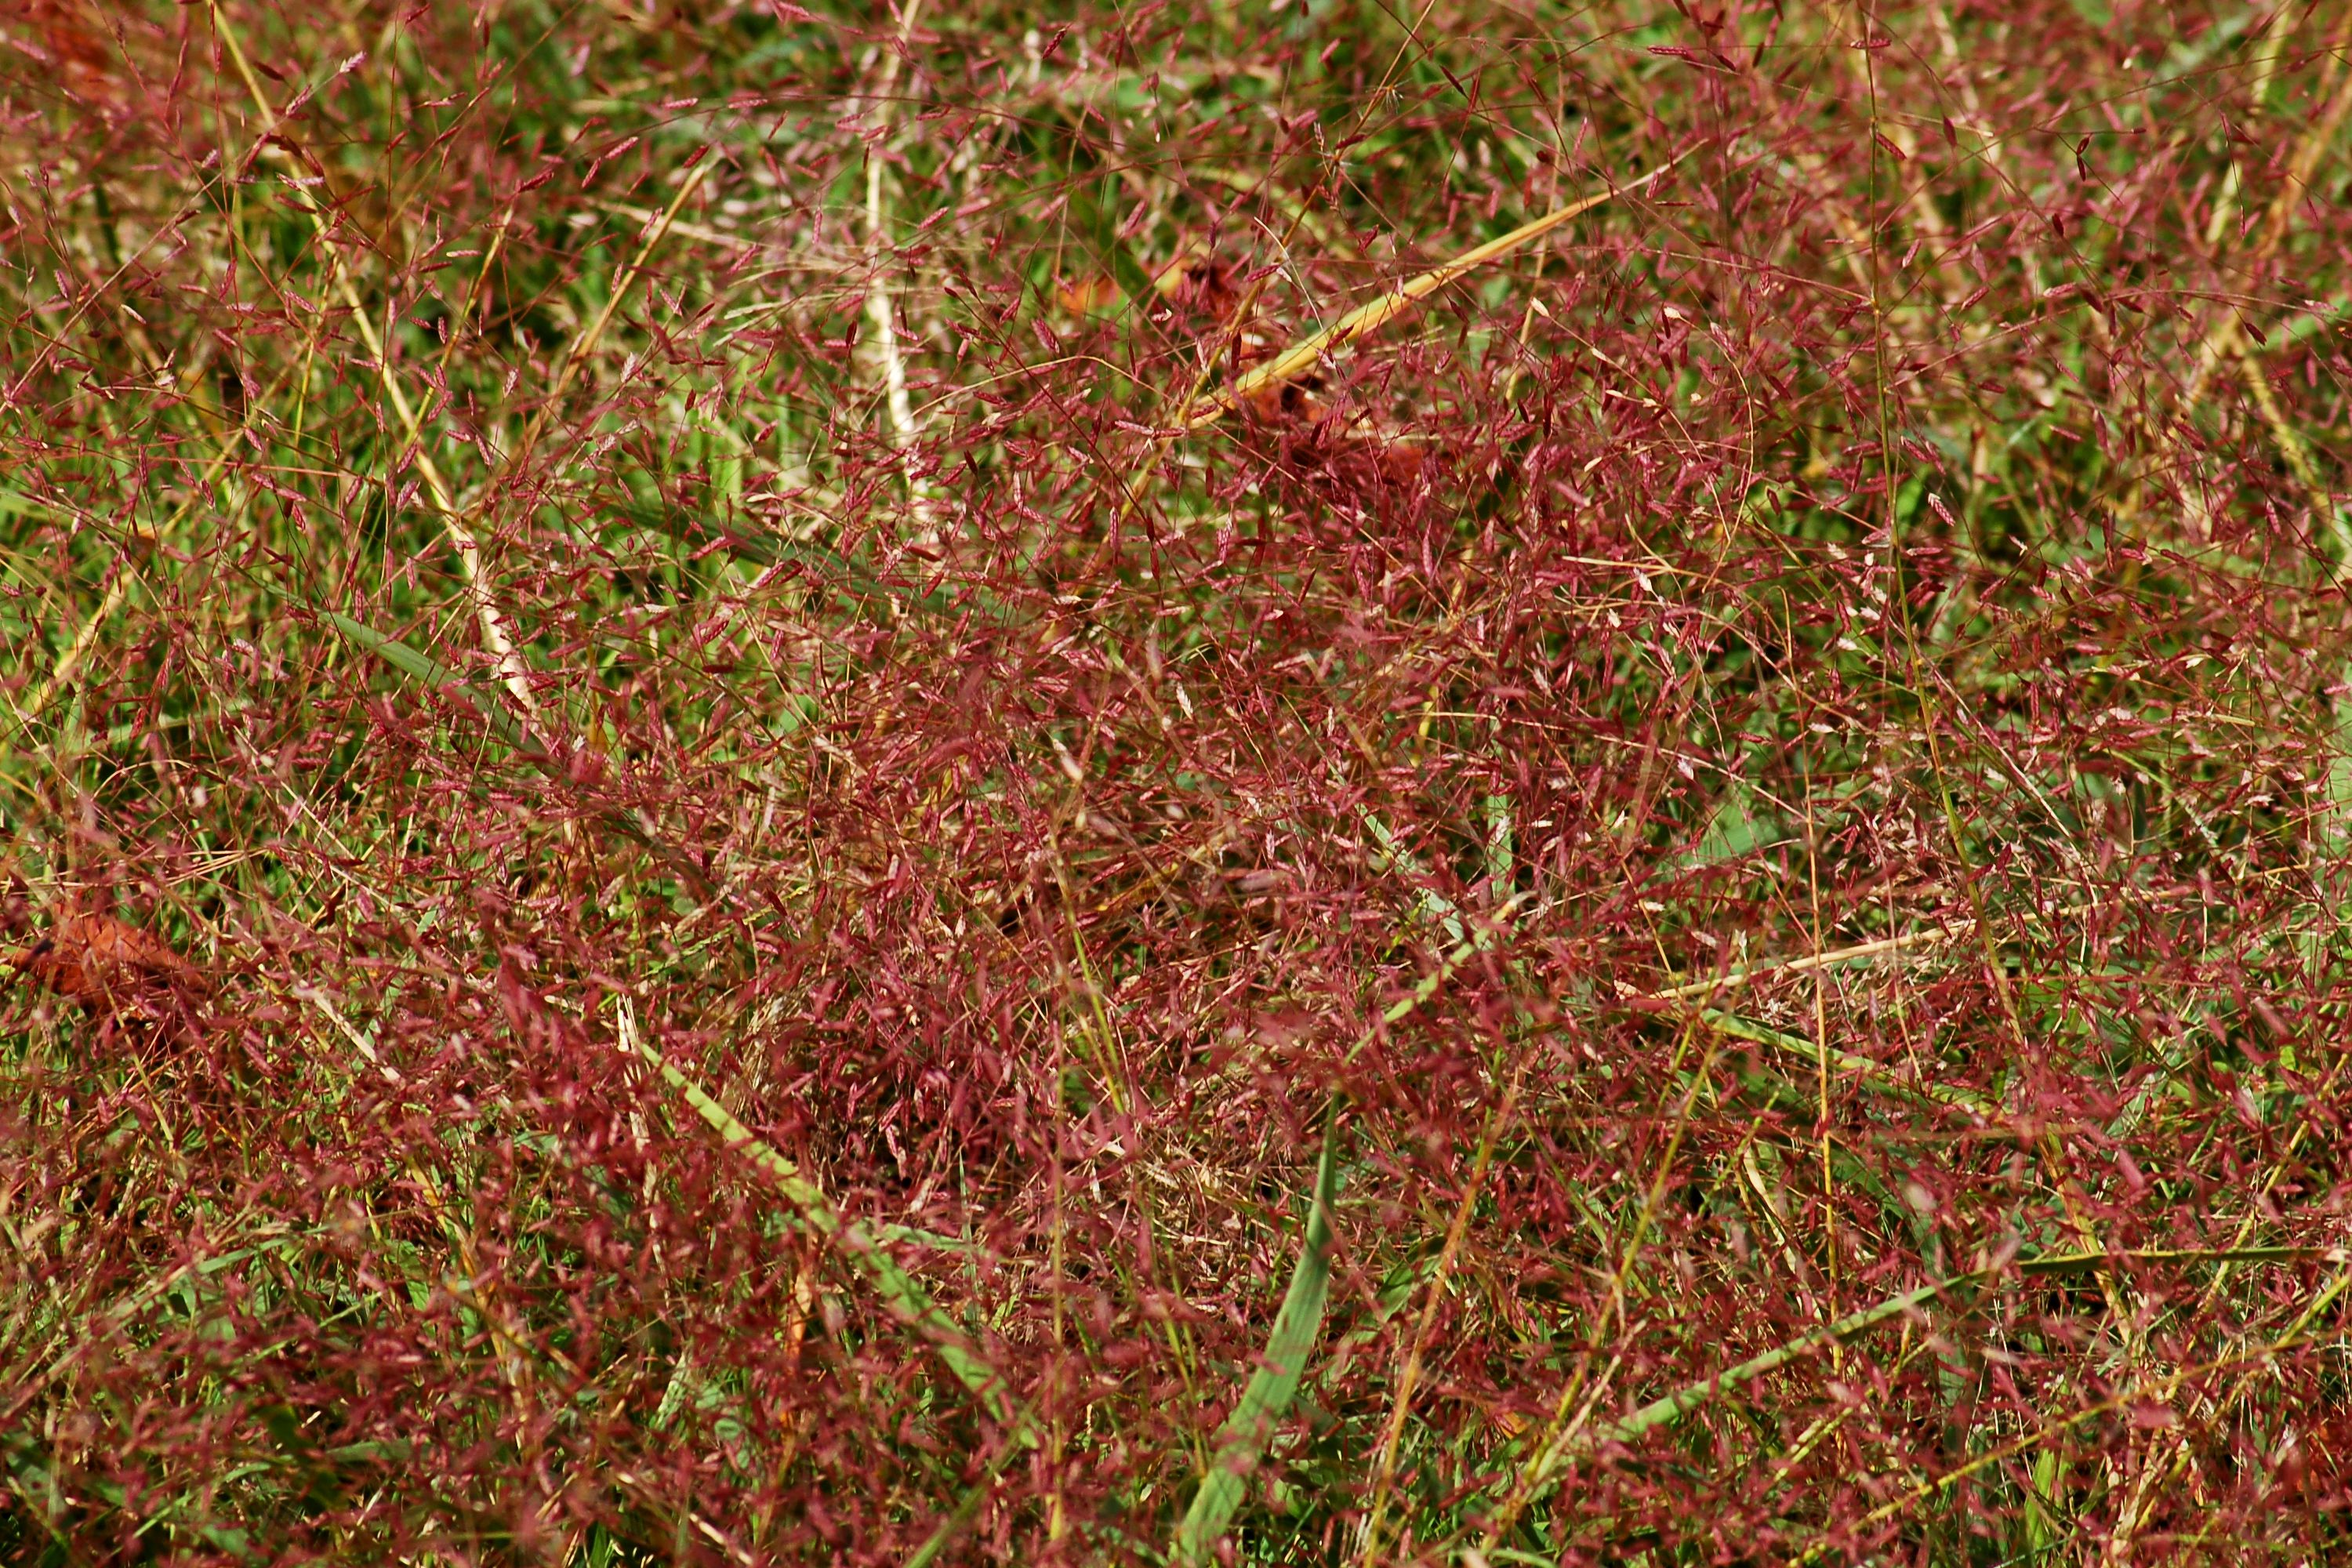 Picture: purple love grass. This wild grass is often seen along roadsides.